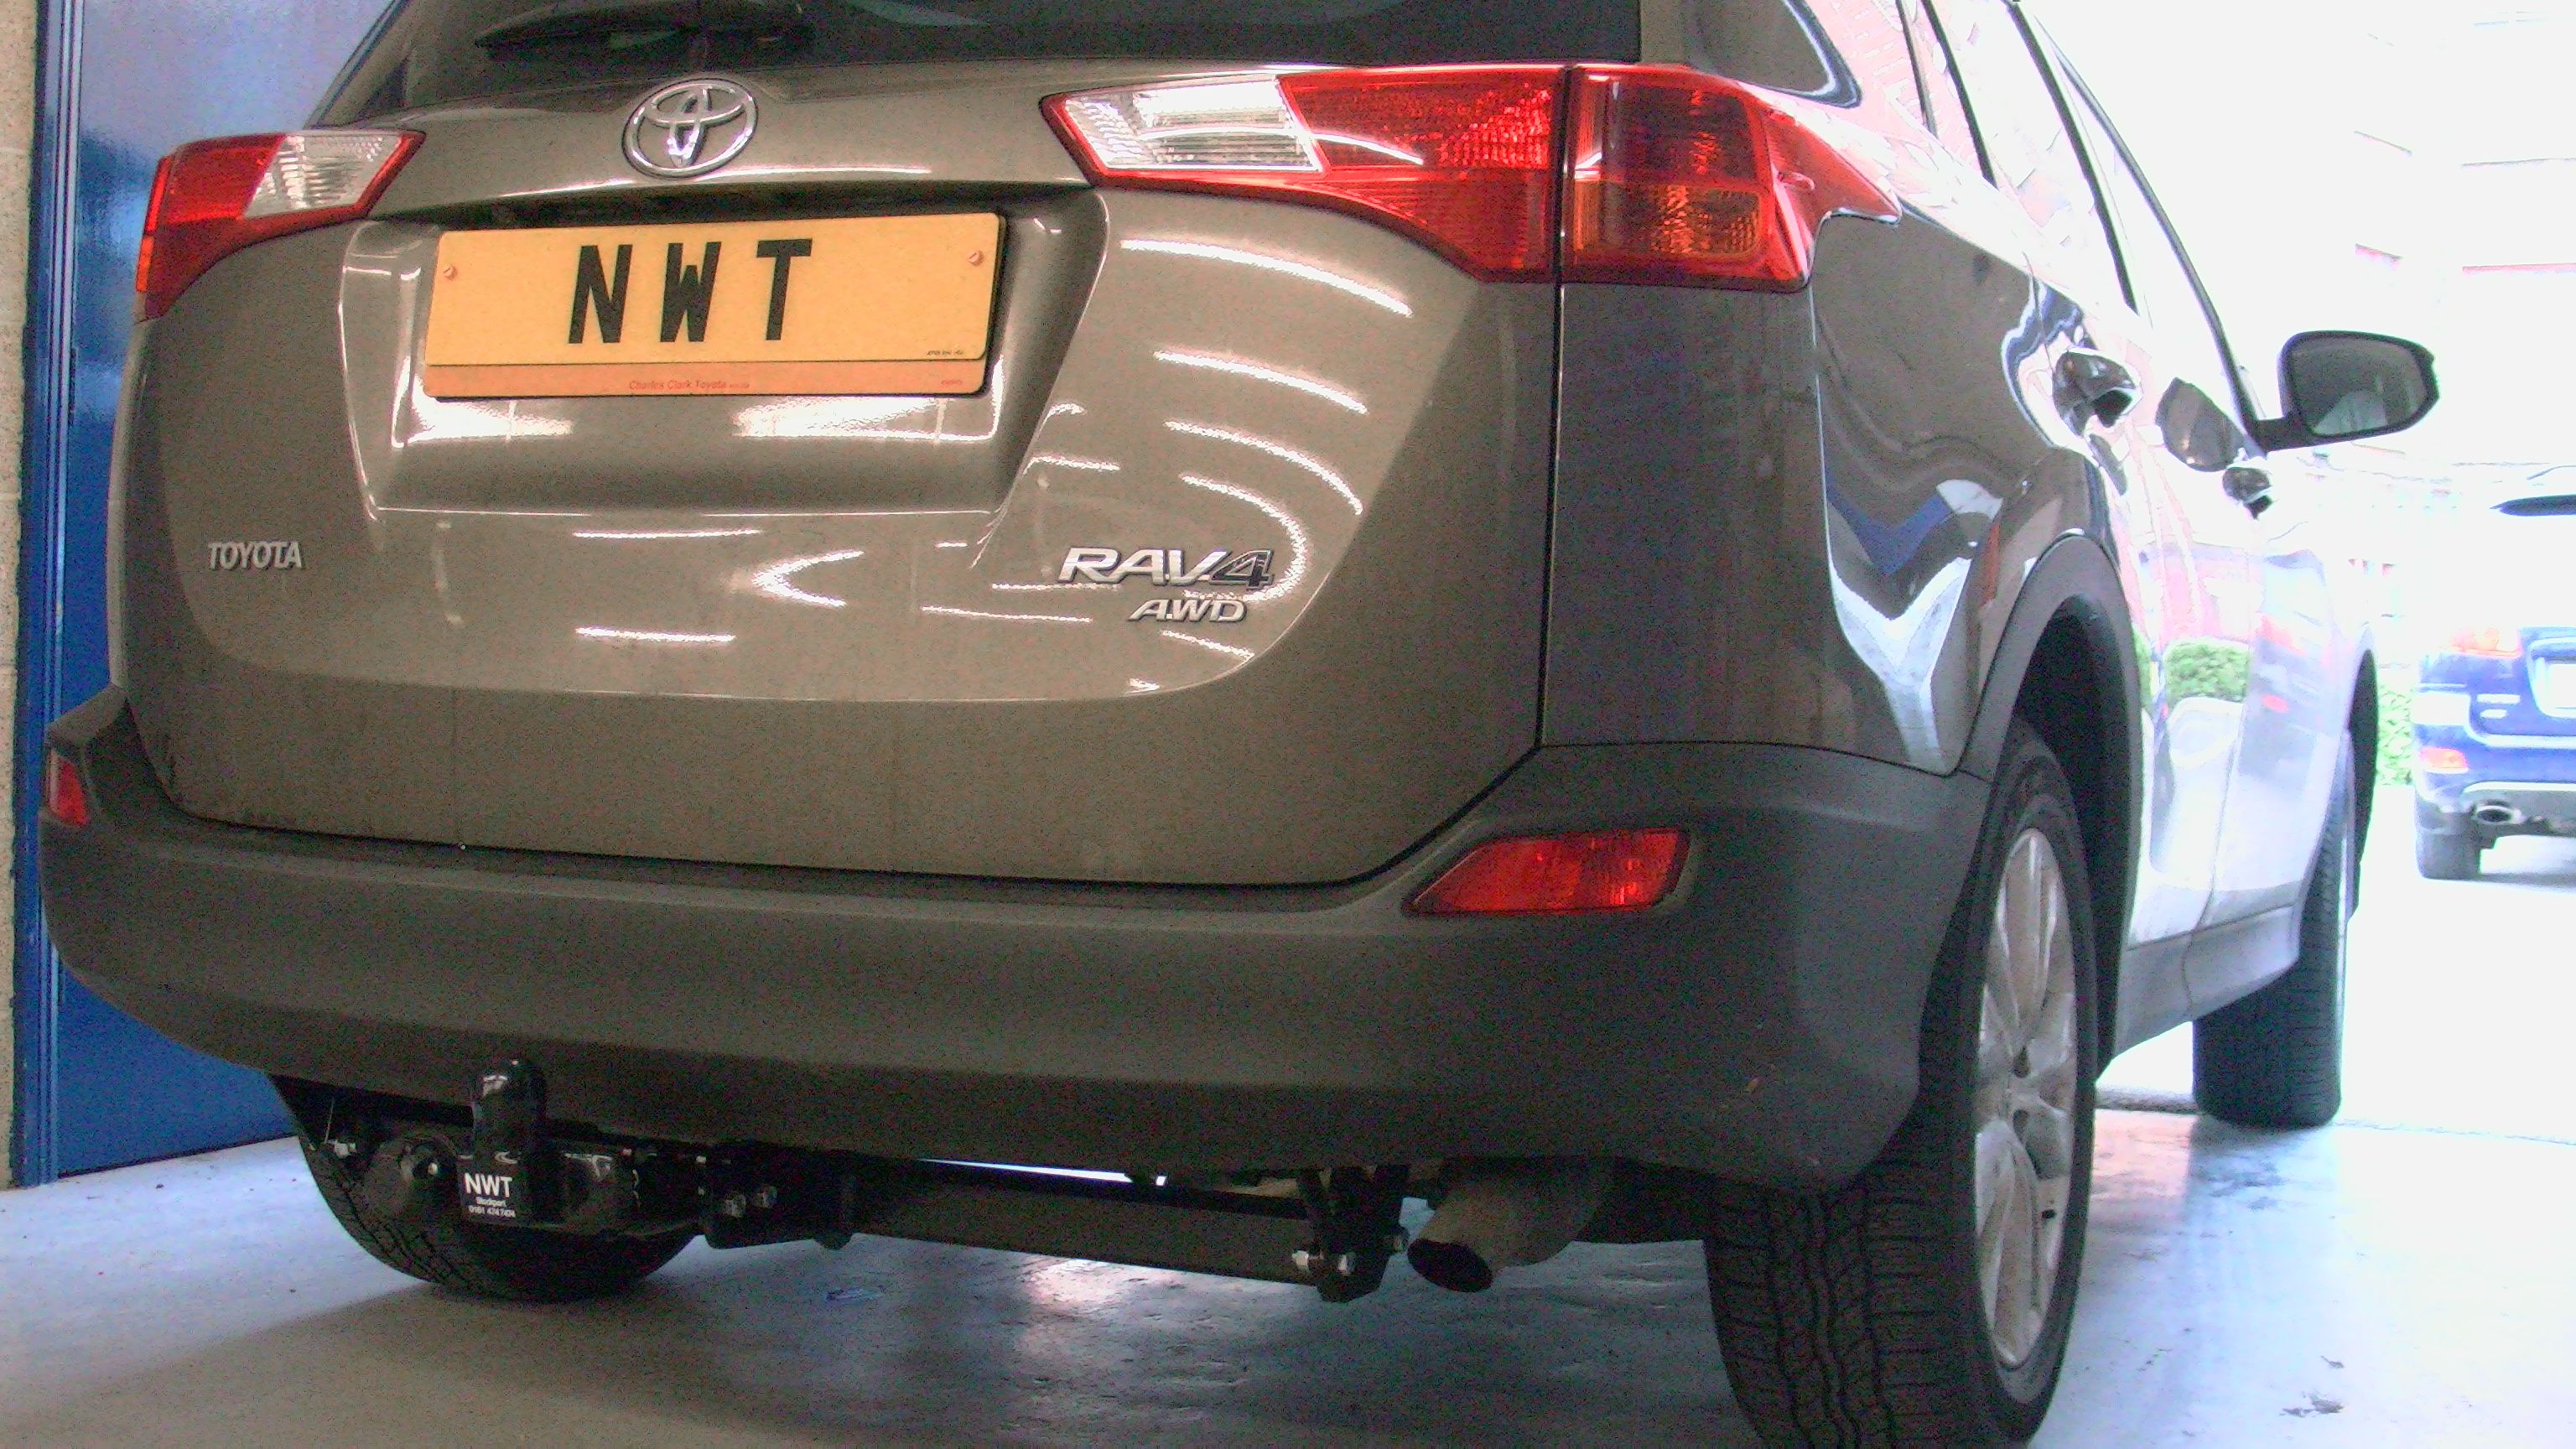 Toyota rav4 fitted with a witter flange ball towbar see all angles toyota rav4 fitted with a witter flange ball towbar see all angles at http cheapraybanclubmaster Choice Image